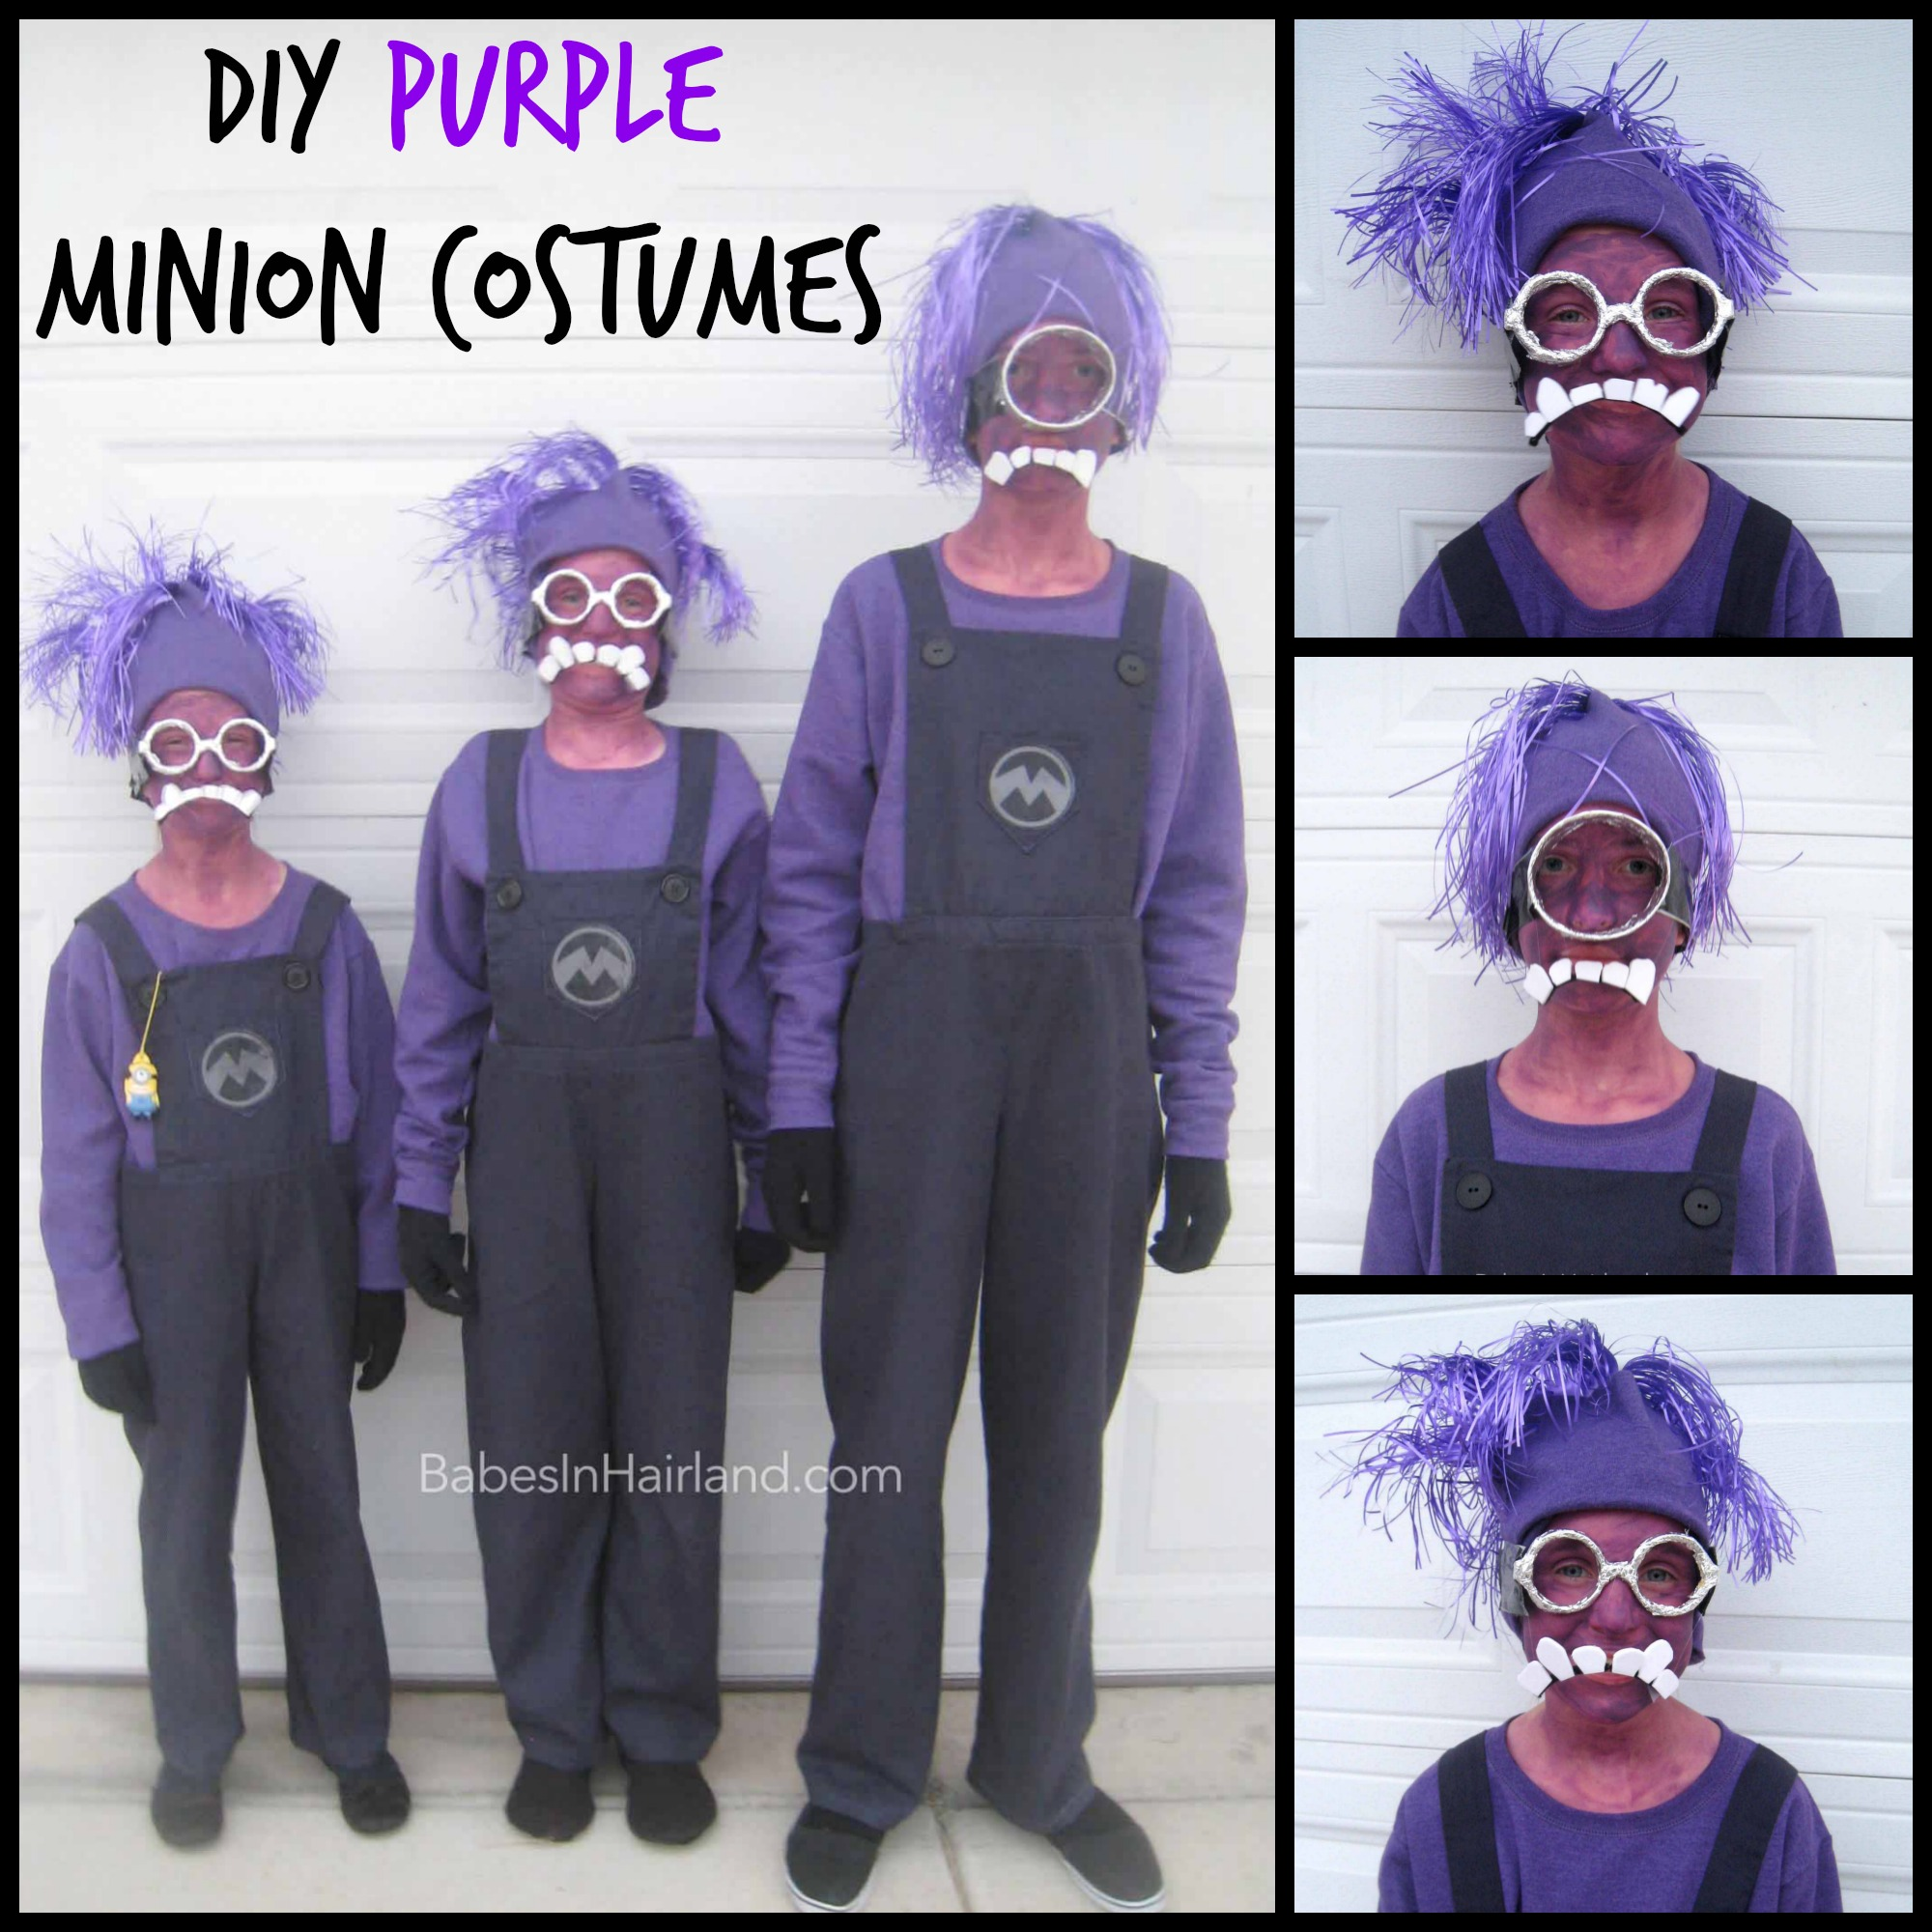 Purple Minion Halloween Costume For Kids Diy Purple Minion Costumes